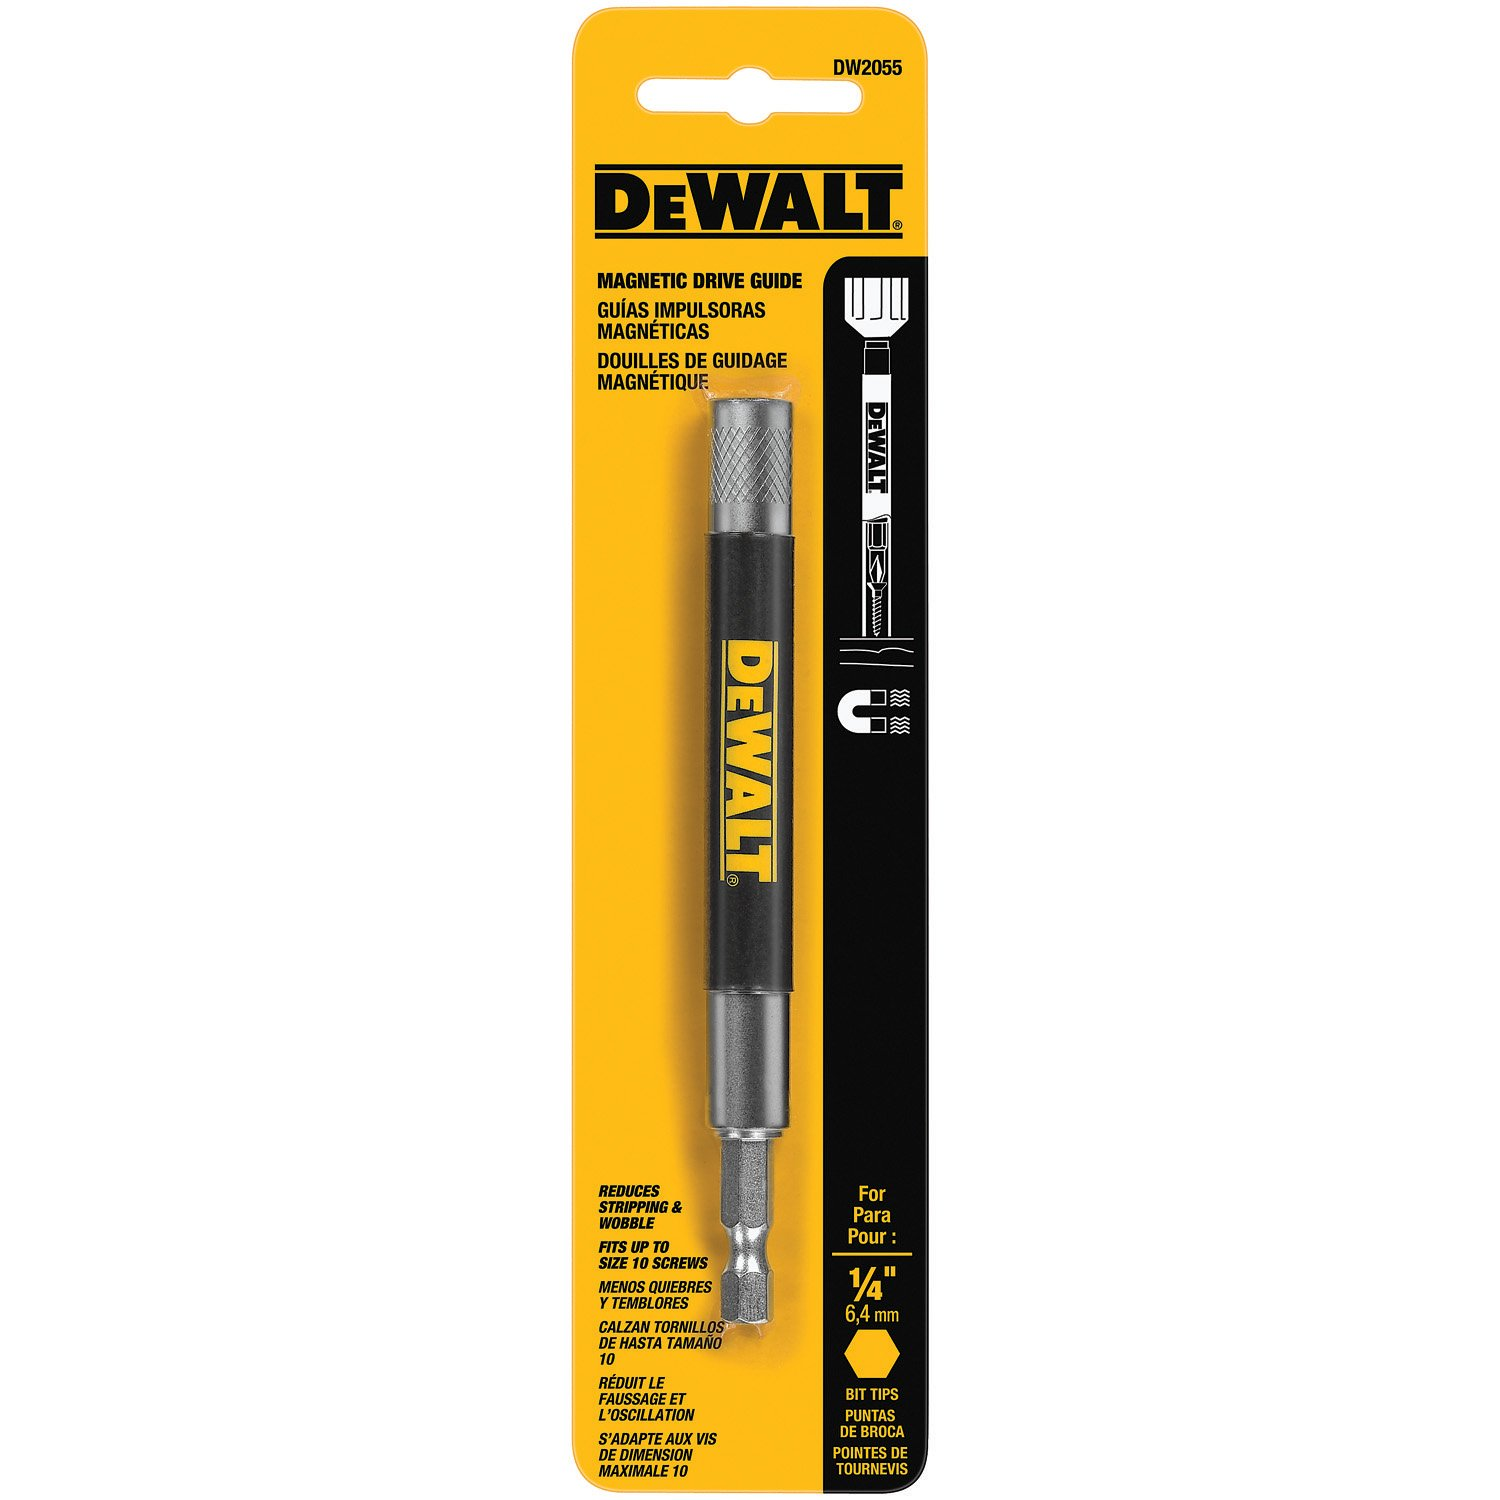 DEWALT DW2055 Bit Tip Holder